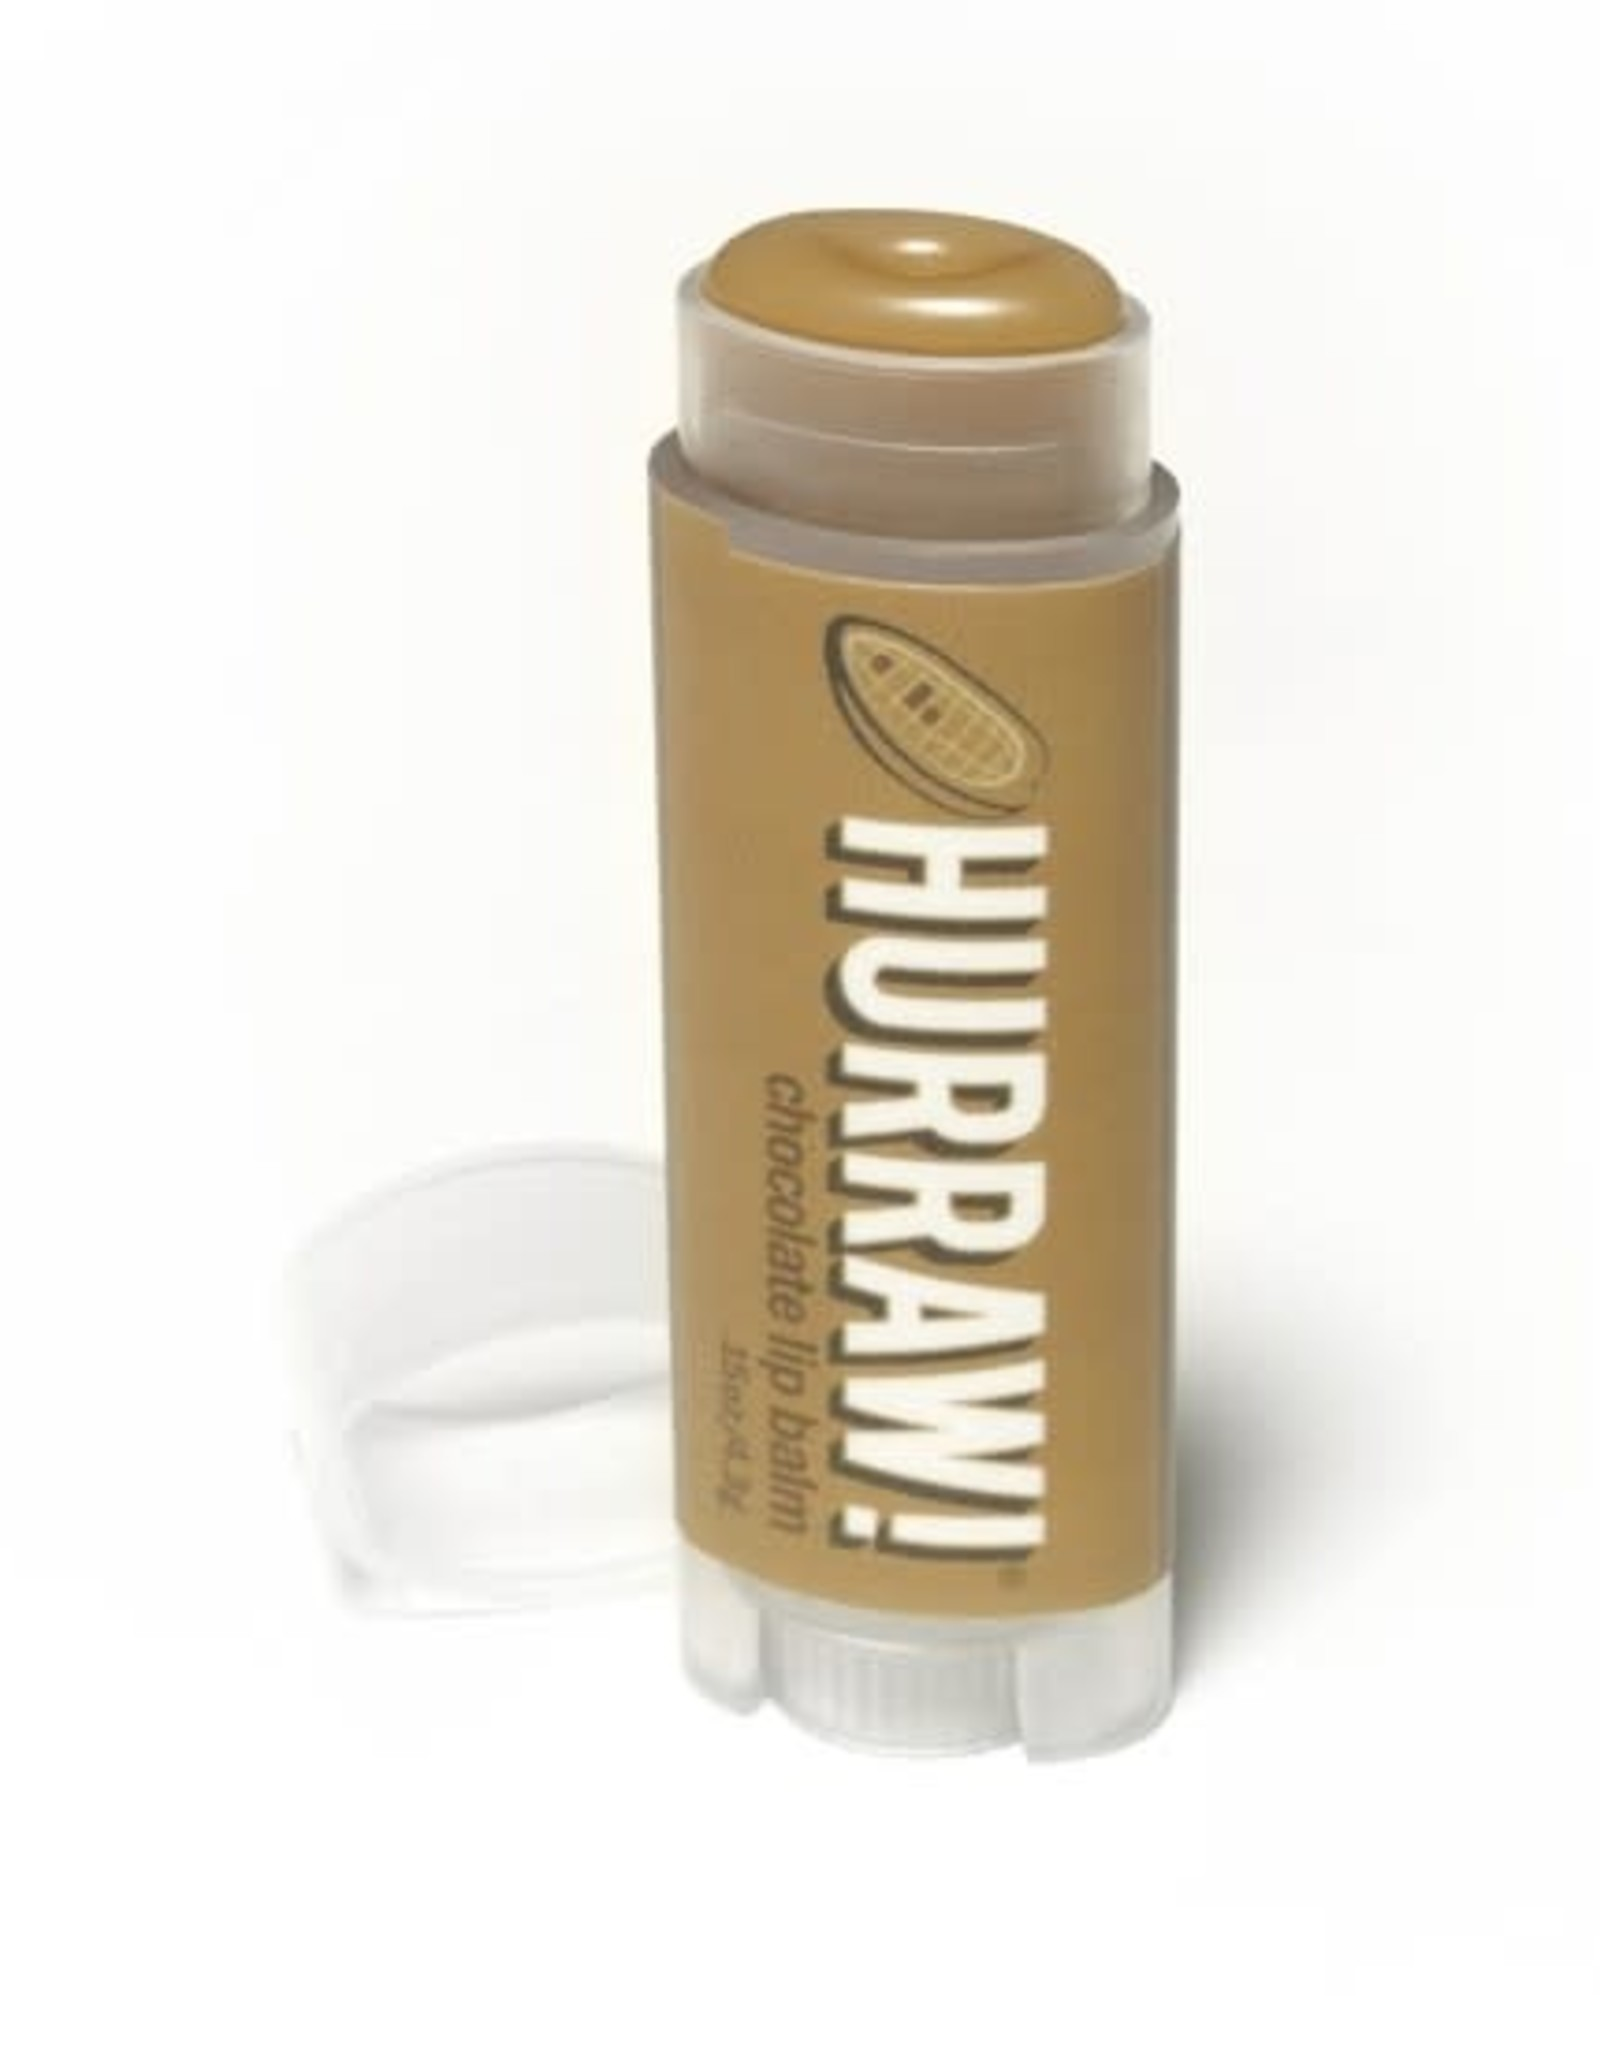 Hurraw Hurraw! Chocolate Lip Balm 4.8g